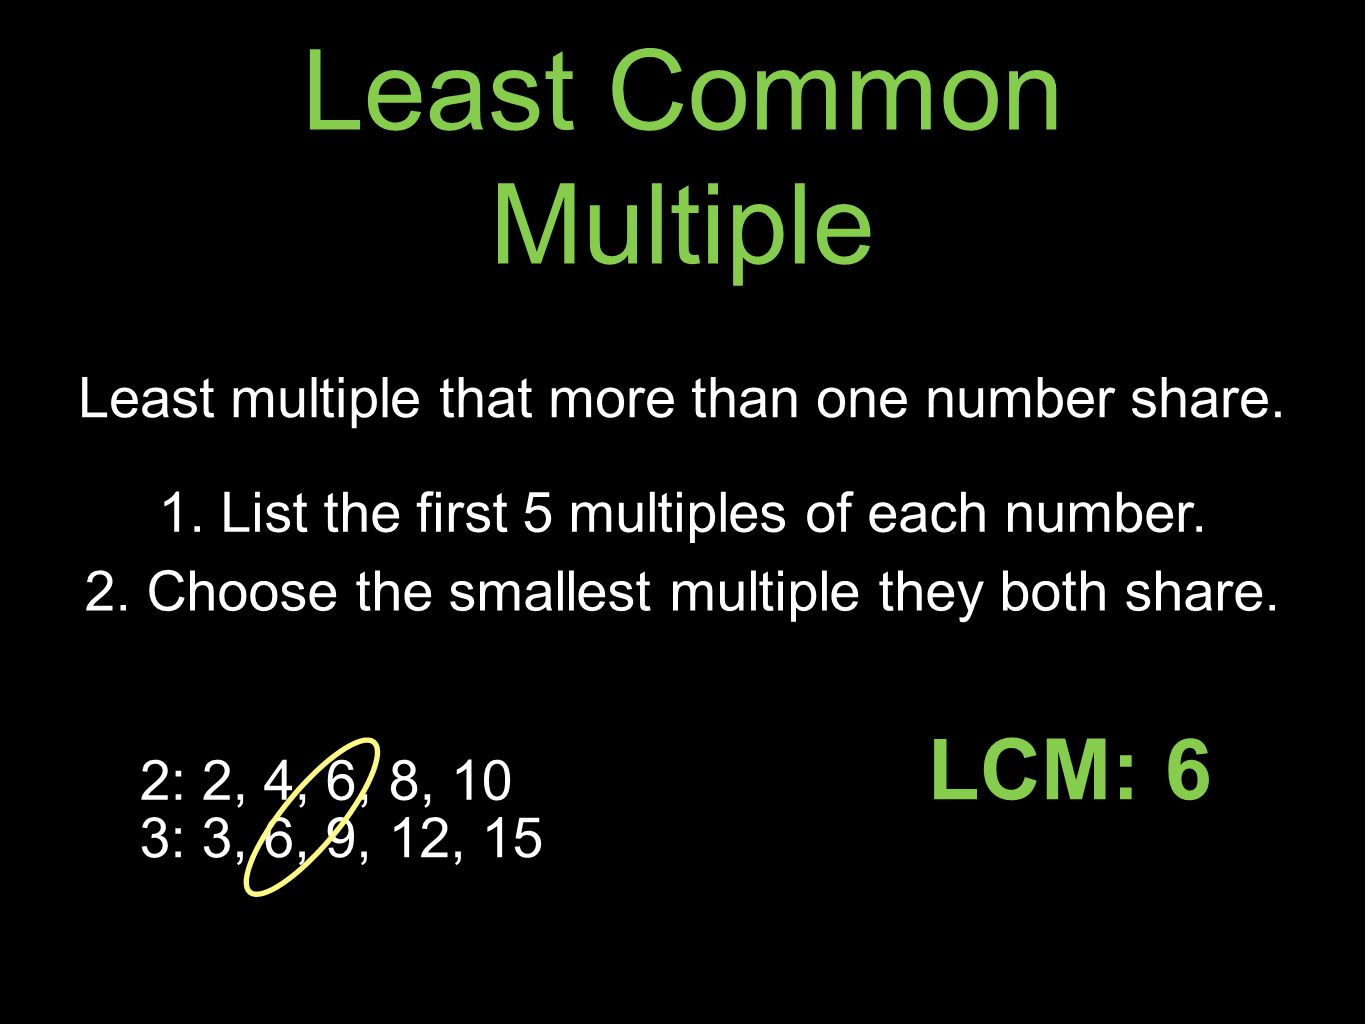 Least Common Multiple LCM: 6